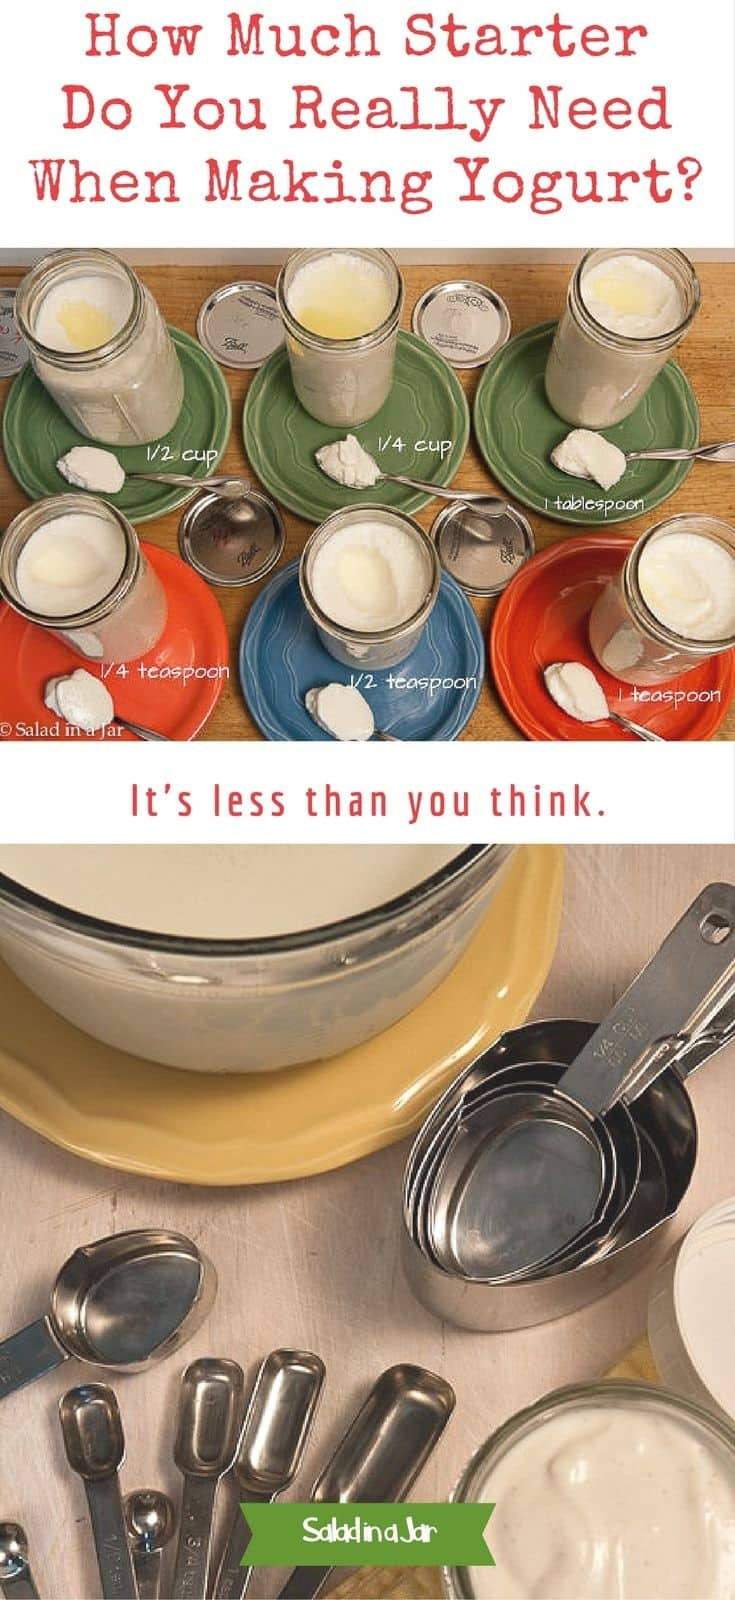 How Much Starter Do You Really Need To Make Yogurt; experiment, homemade yogurt, starter, troubleshoot, comparison, tips